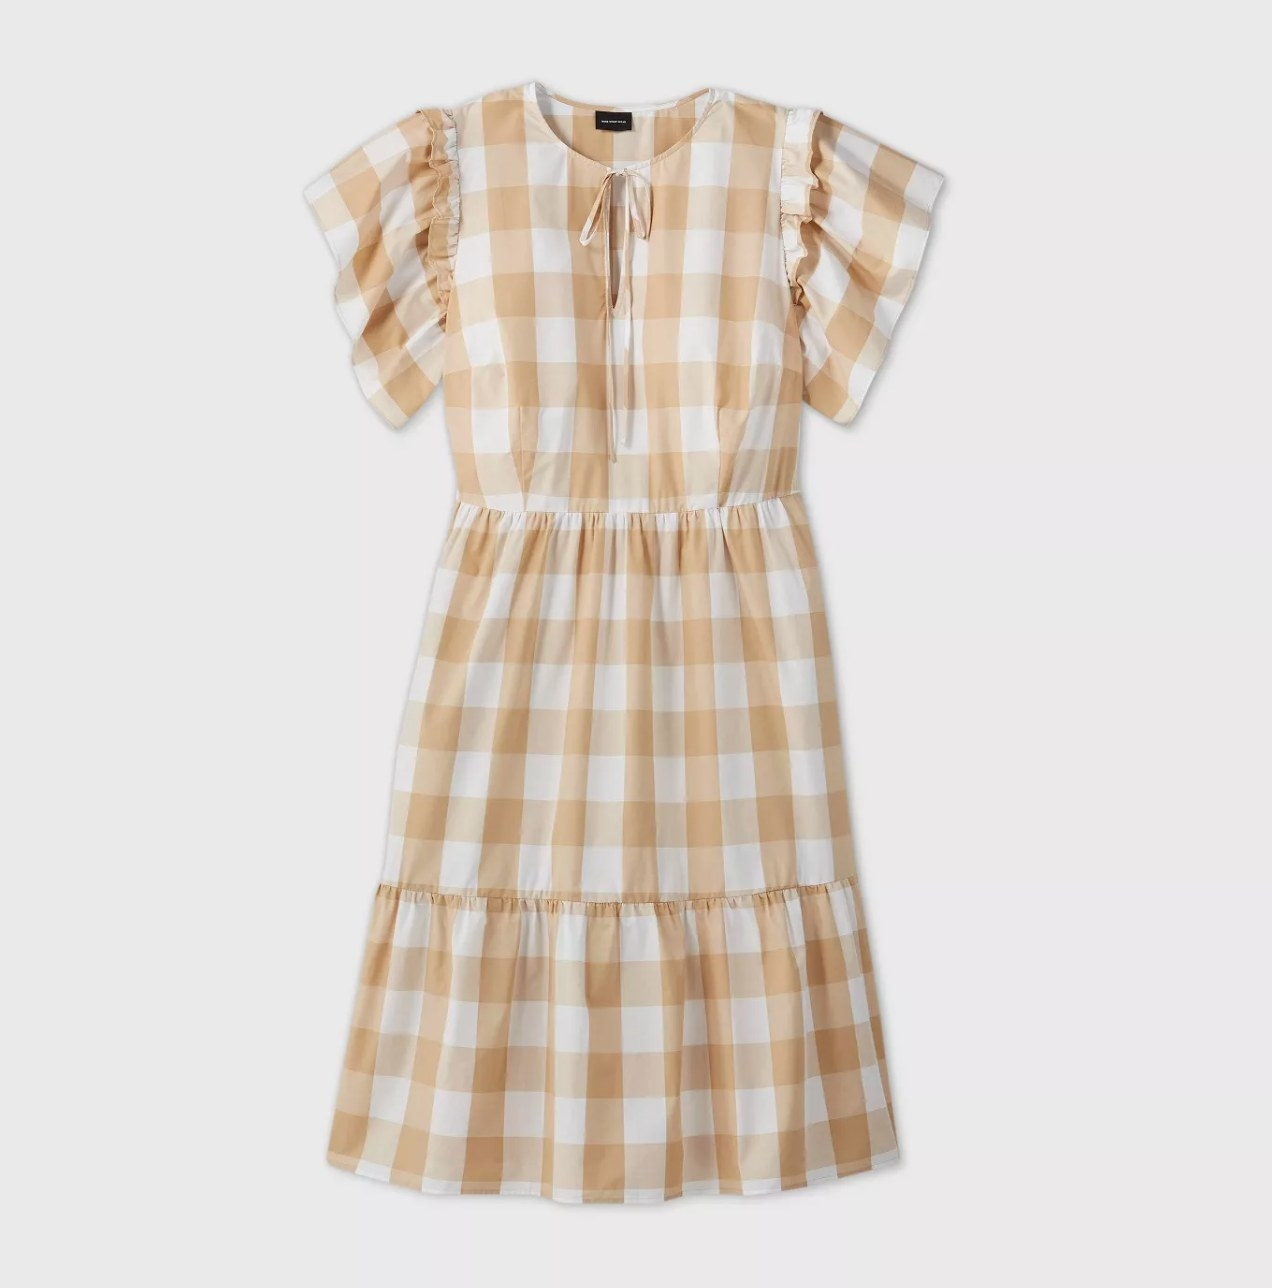 The dress in cream gingham print